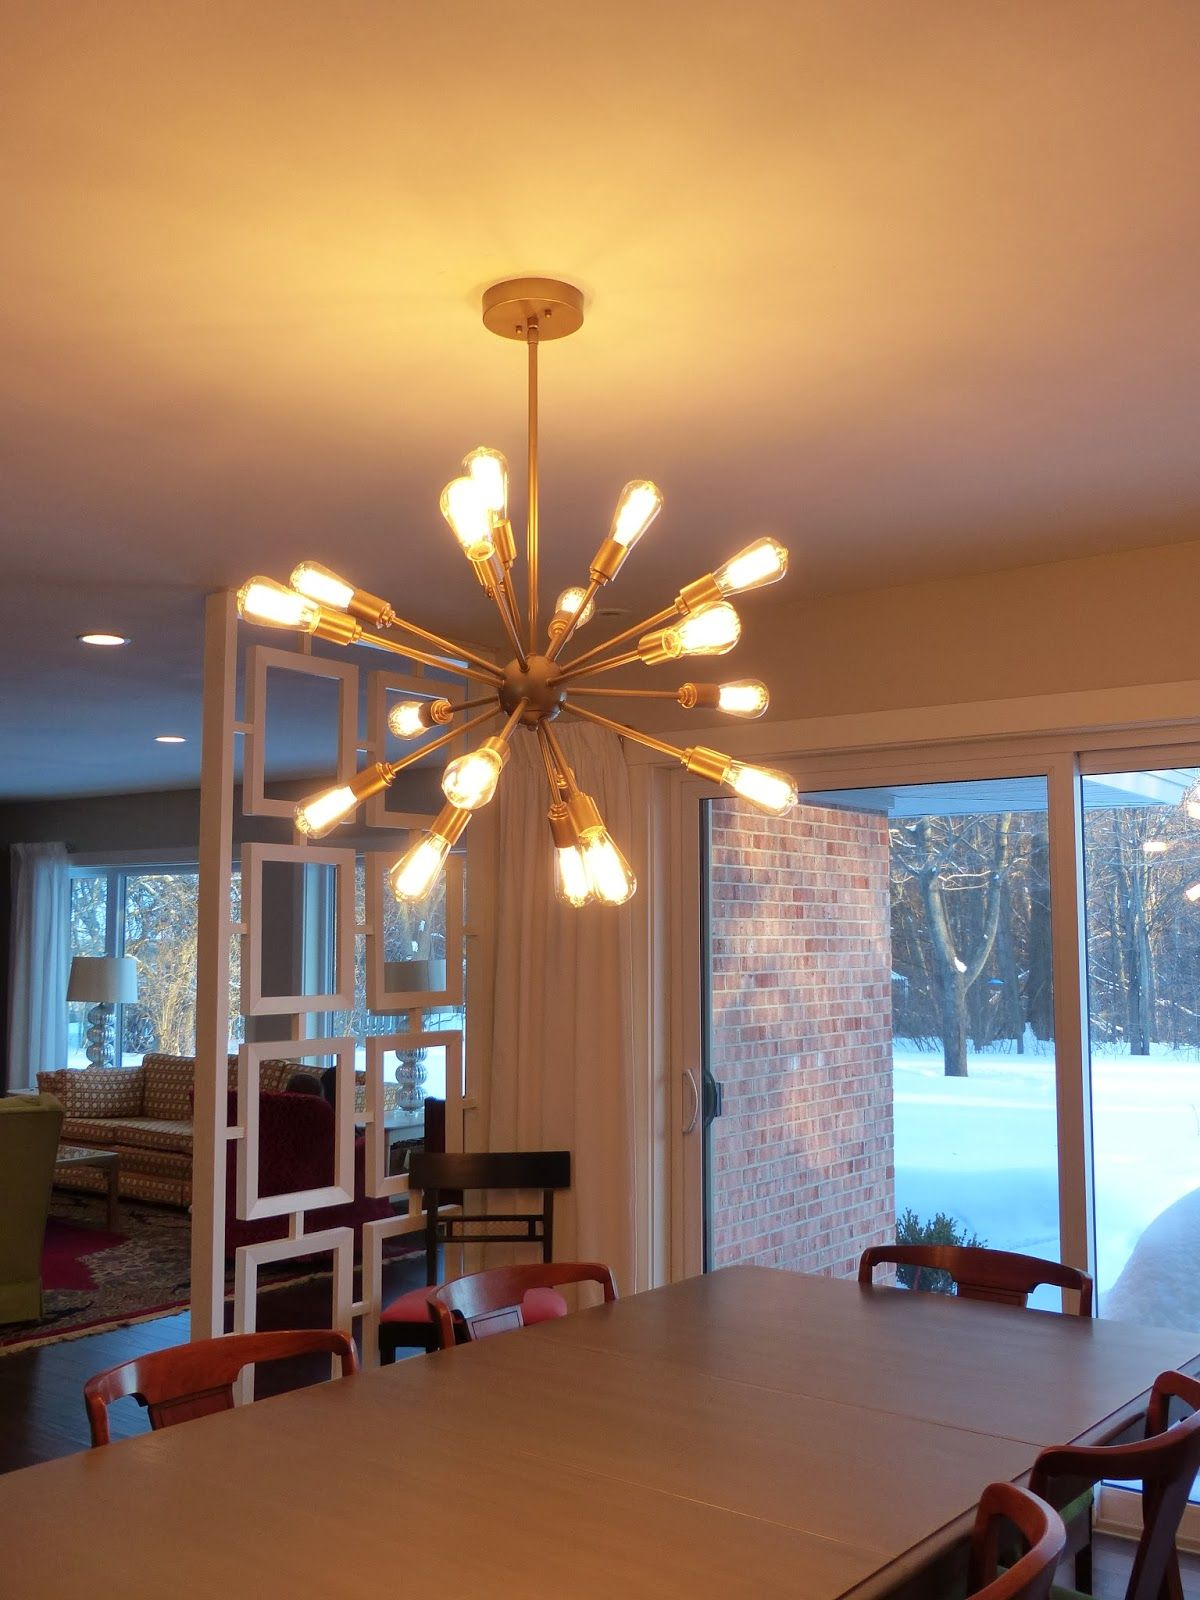 Sputnik chandelier diy Lowes Sputnik Sunburst light SIMPLE